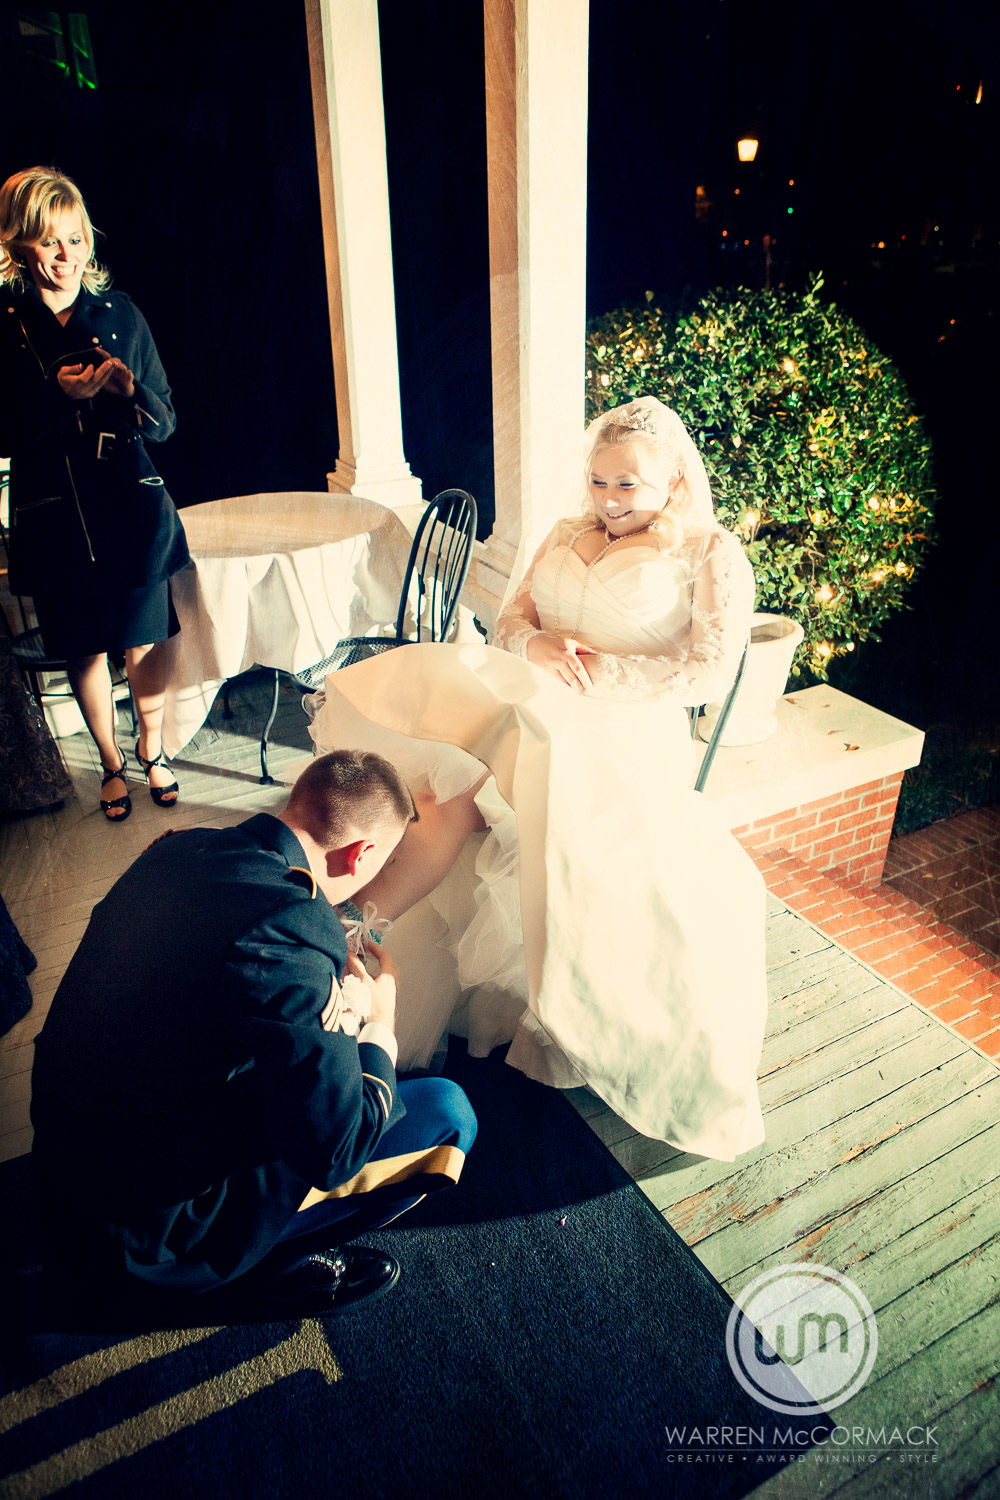 raleigh_wedding_photographer_0015.jpg